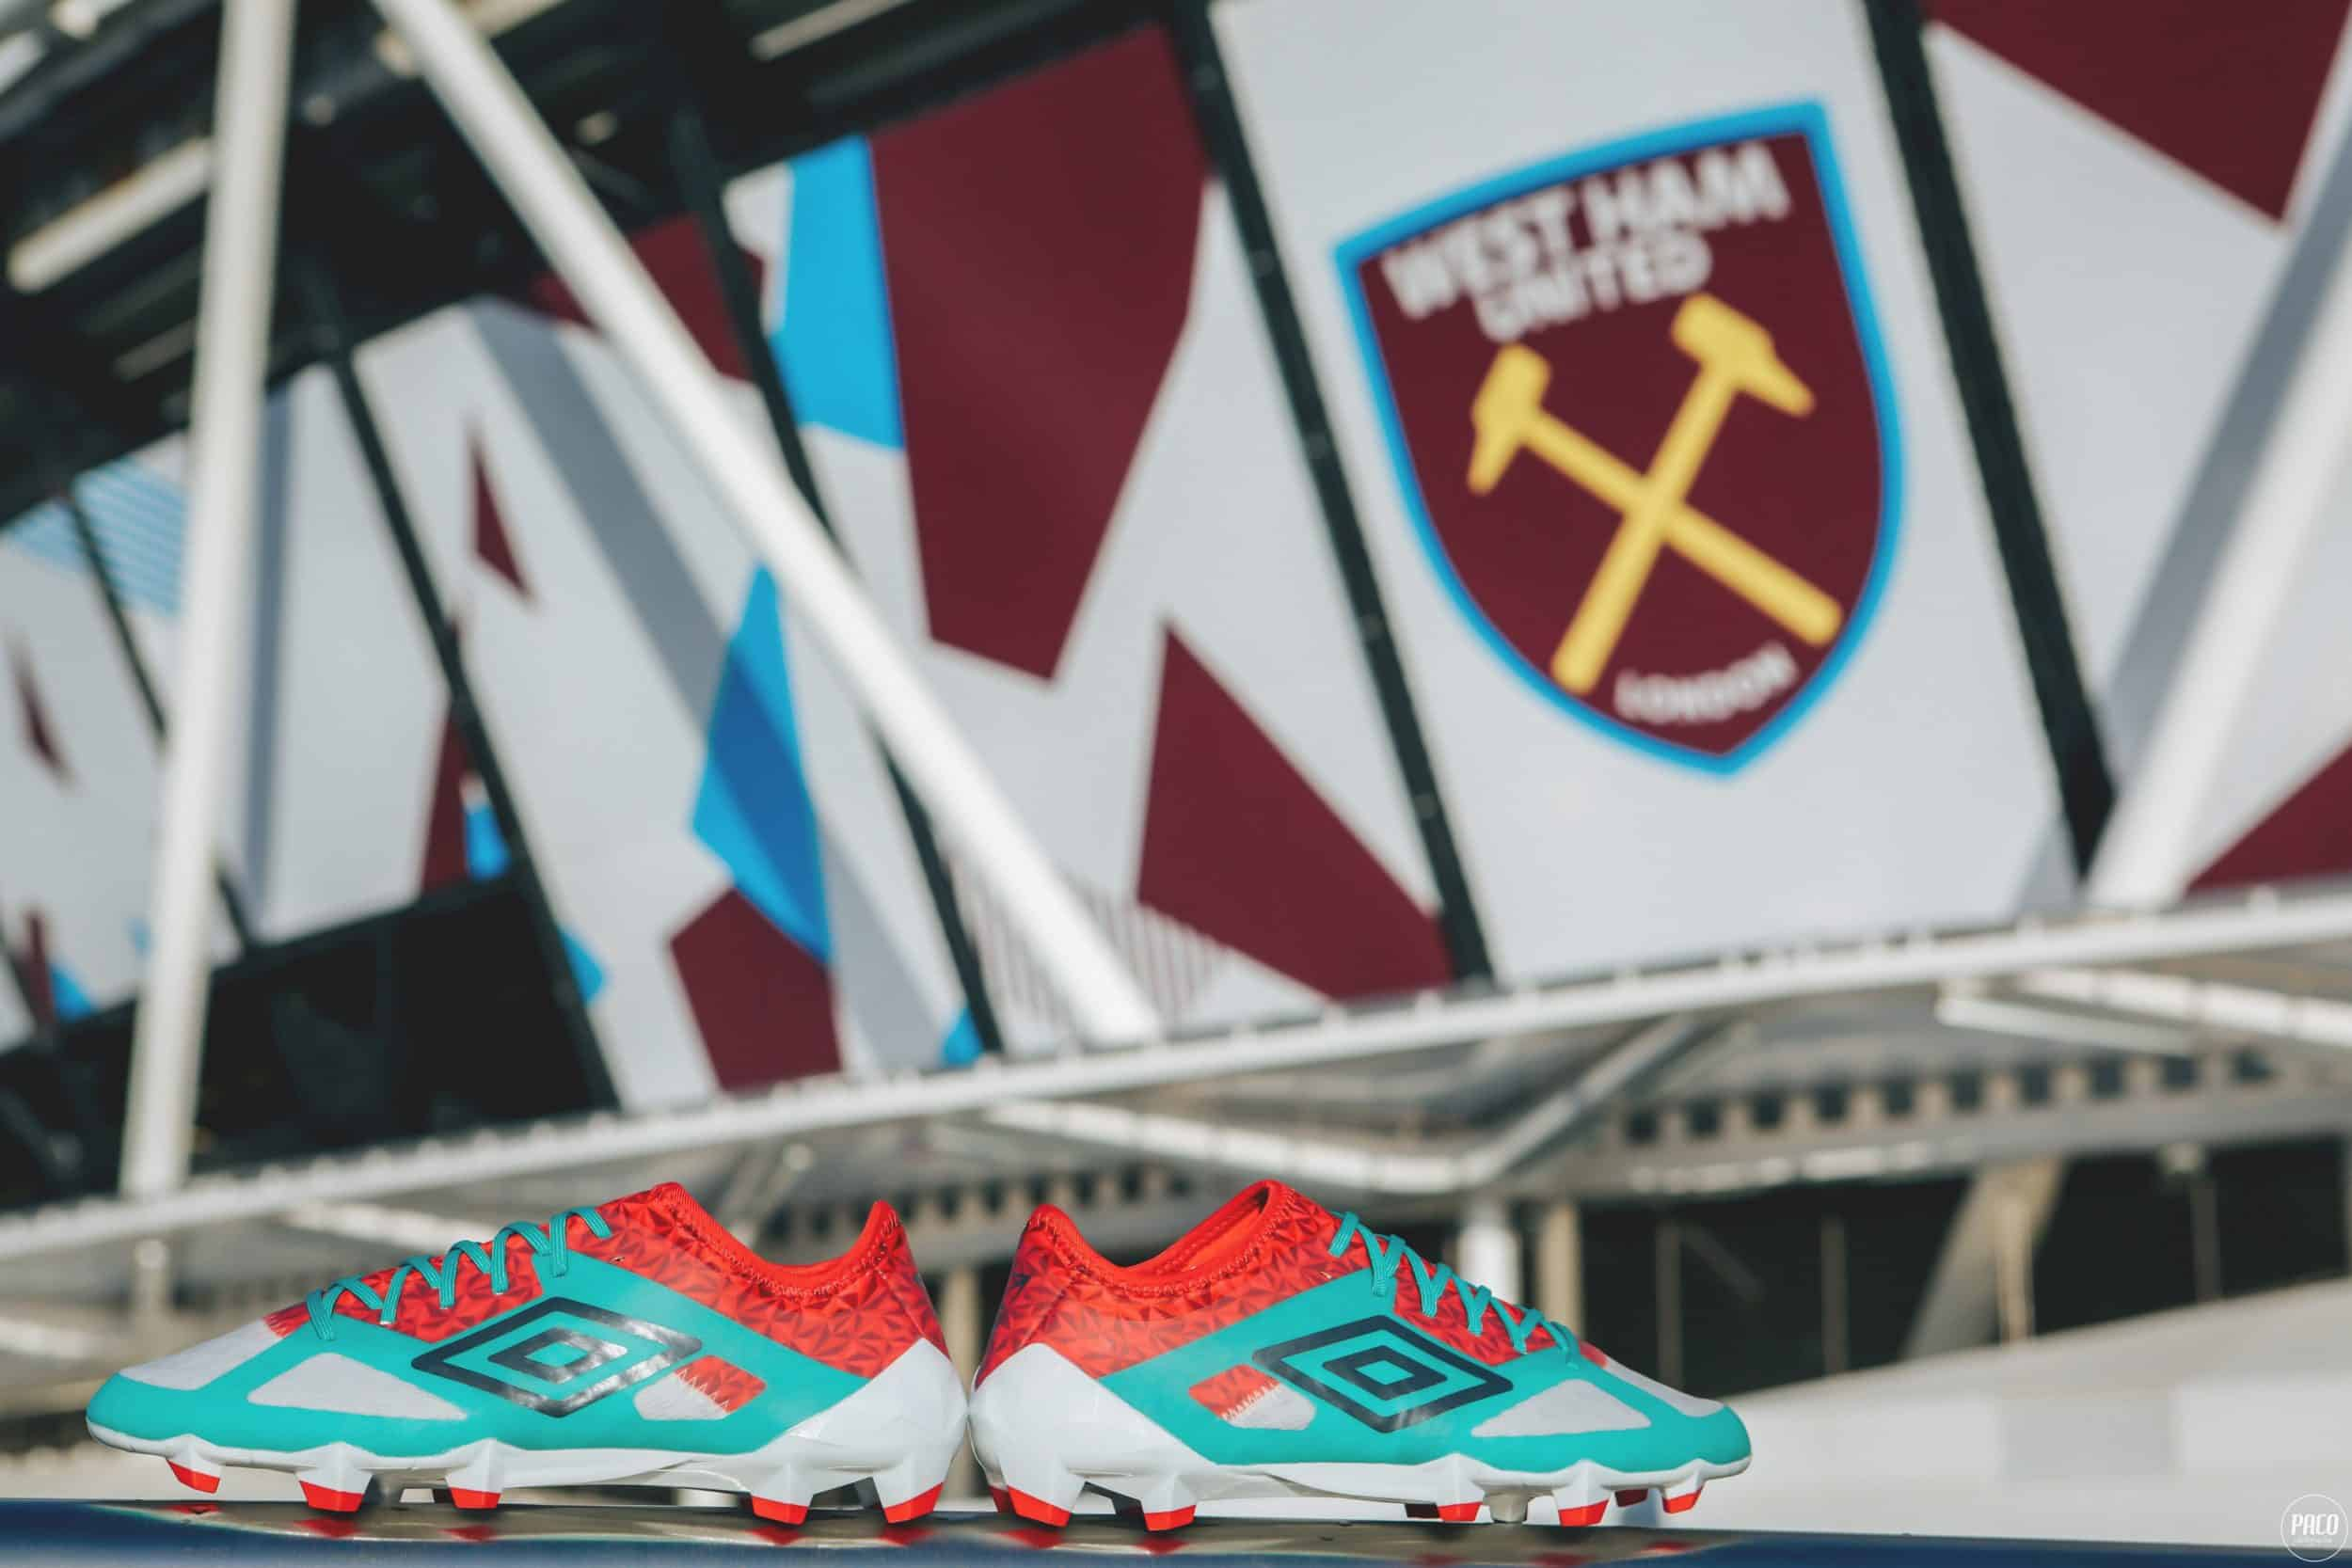 shooting-chaussure-foot-umbro-velocita-3-west-ham-15